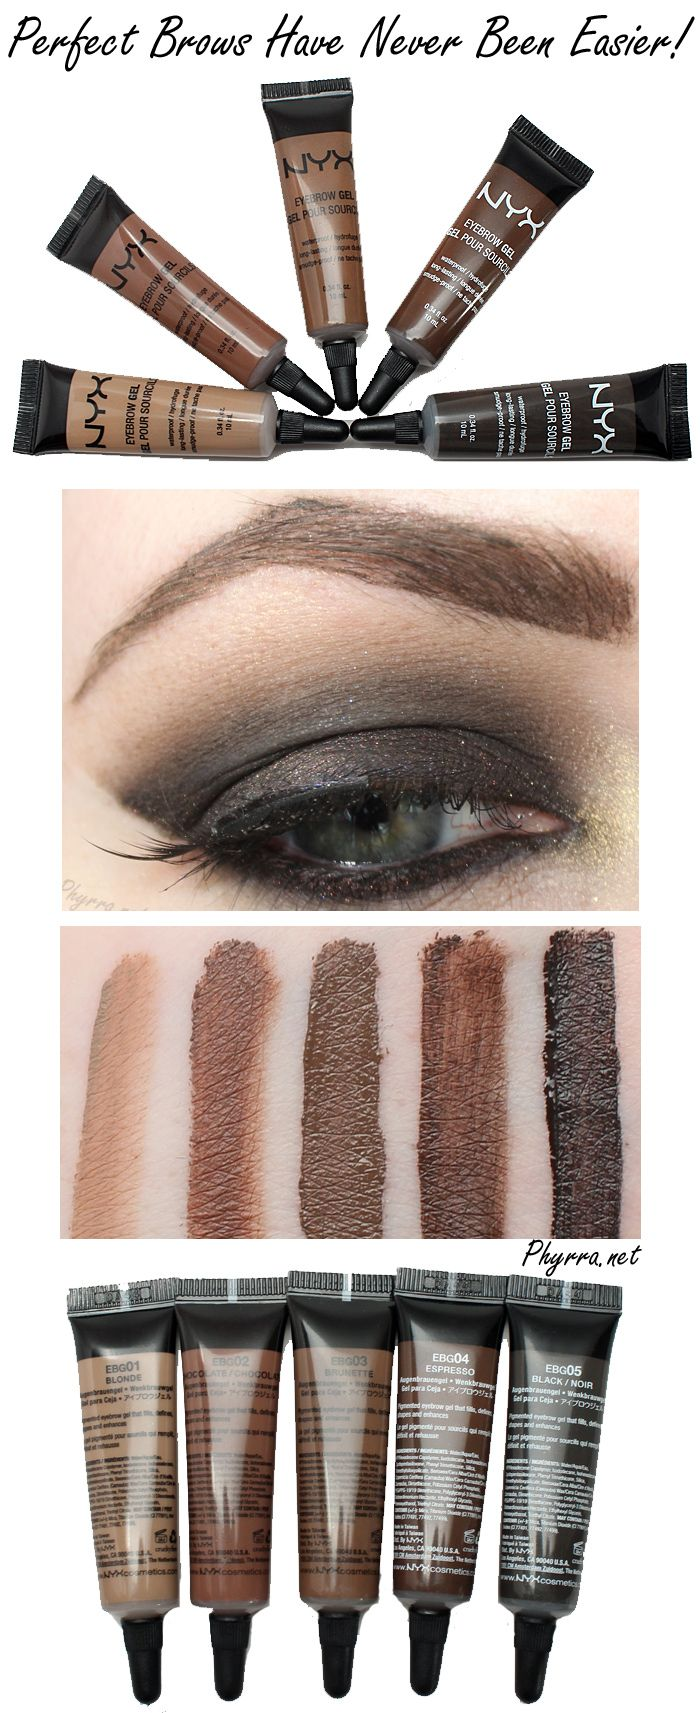 Nyx Eyebrow Gels are an affordable cruelty free dupe for Make Up For Ever Aqua Brow. #crueltyfree #nyx #brows